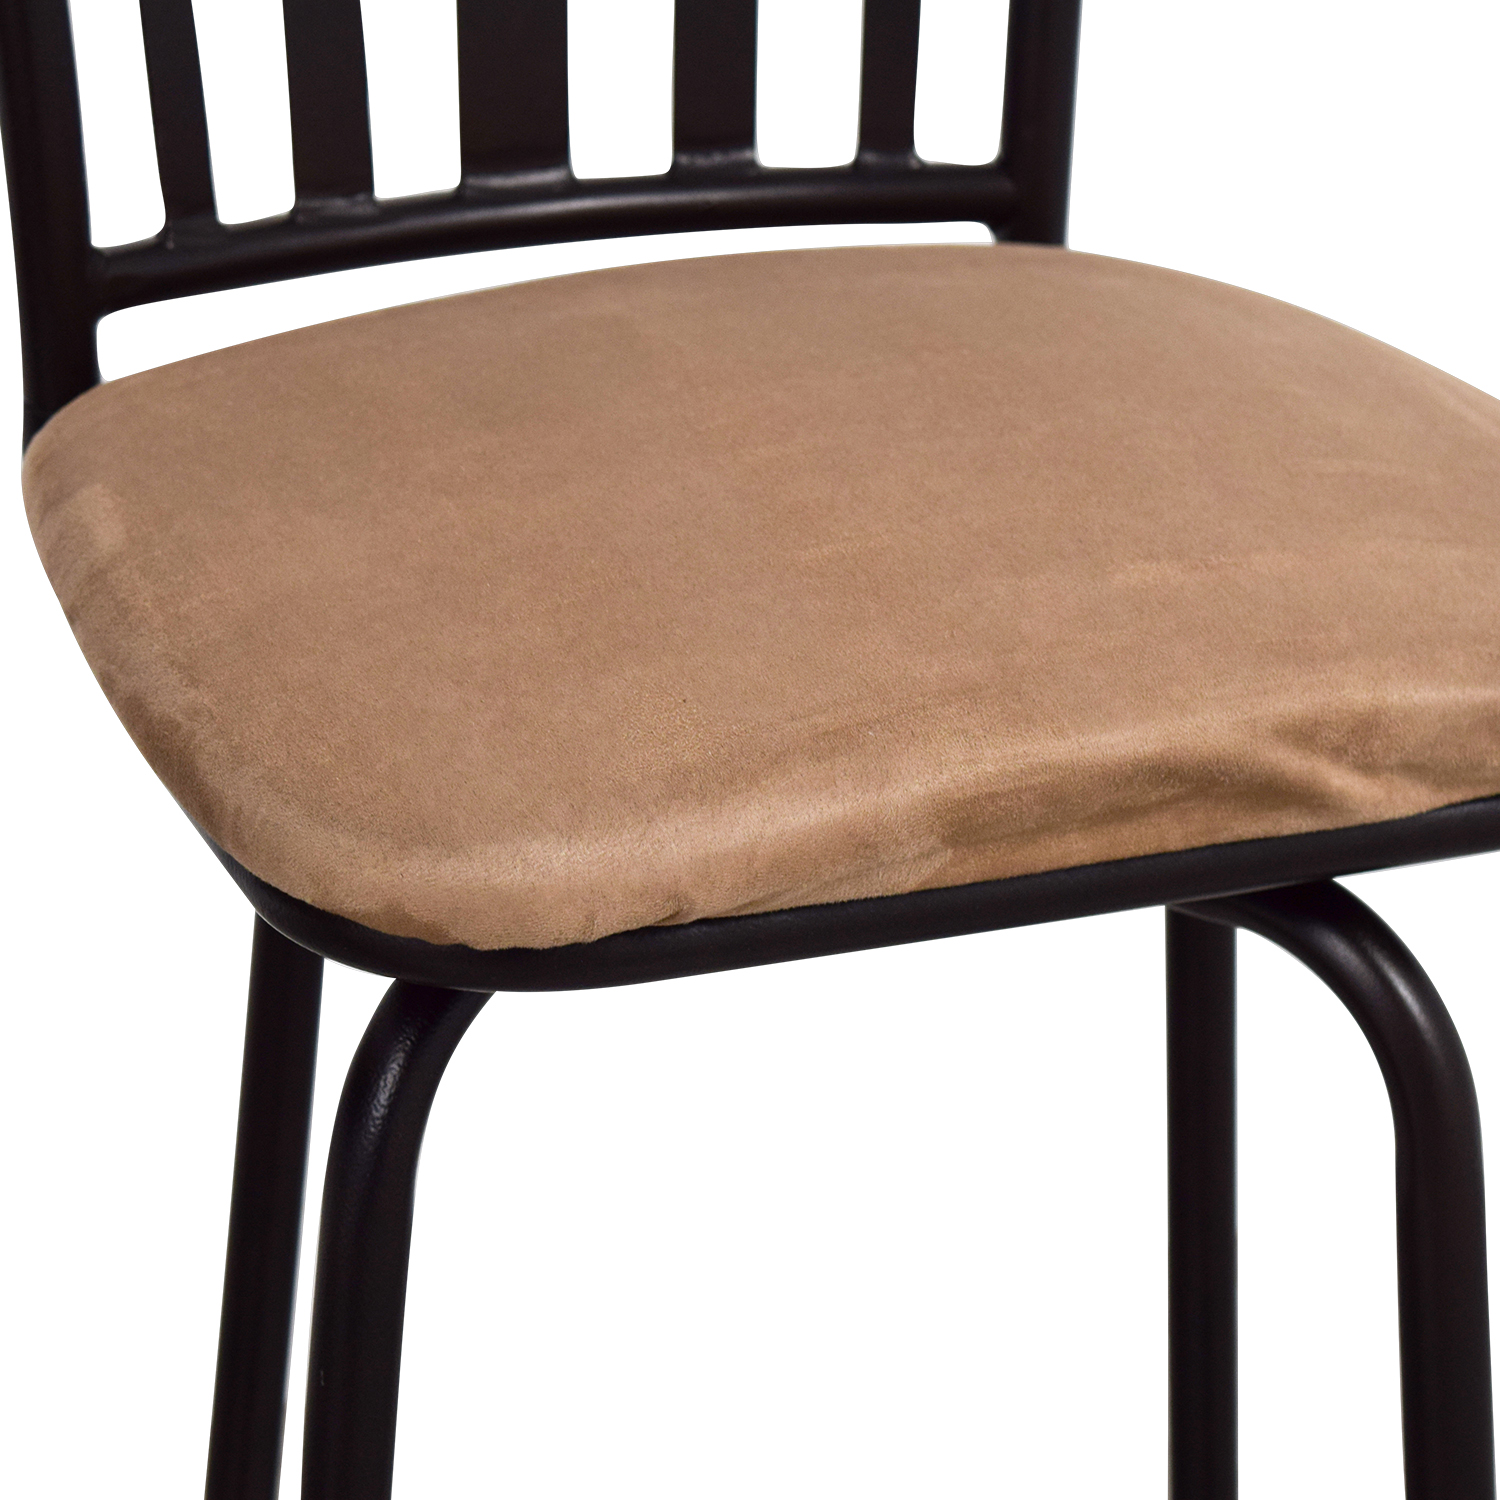 Tan Upholstered Stools with Black Frame used